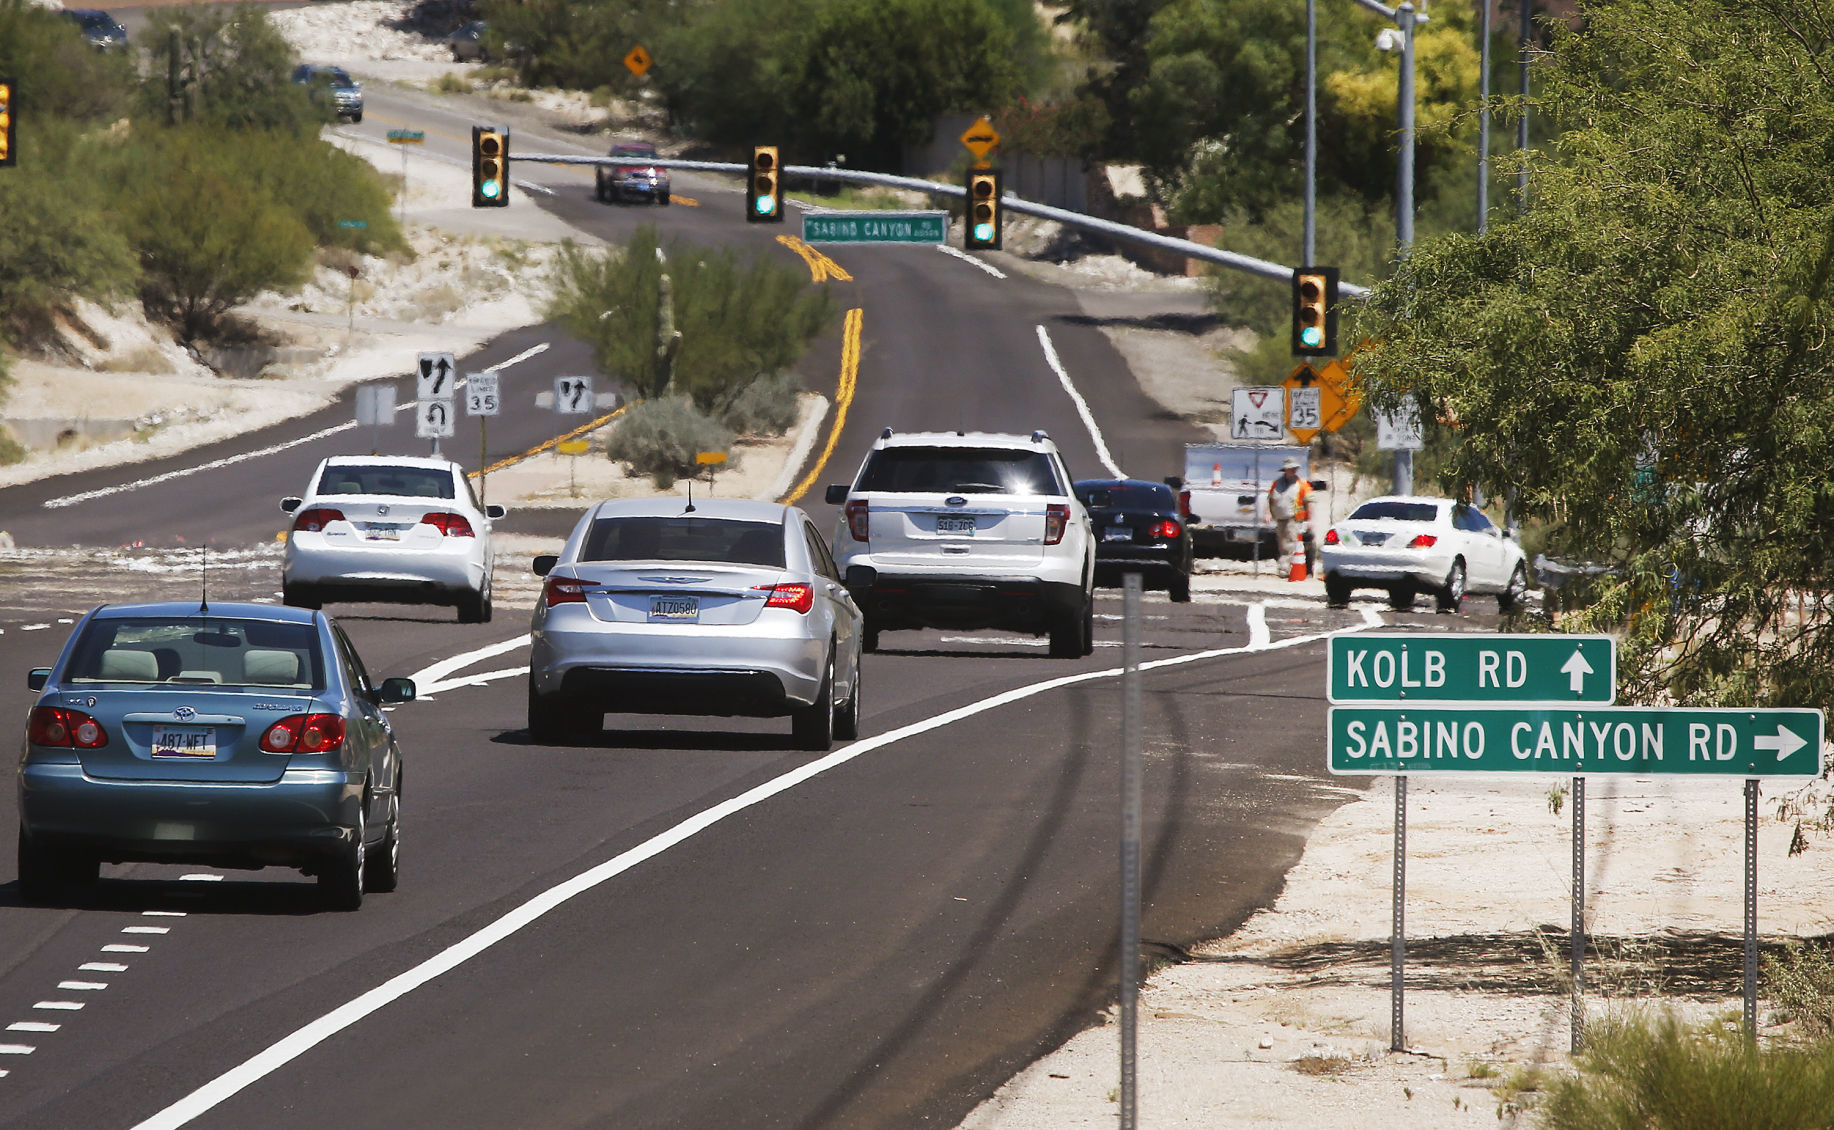 Road Runner: County offers $2.1M to cyclist hit at Sabino Canyon-Kolb in 2015 | Tucson.com